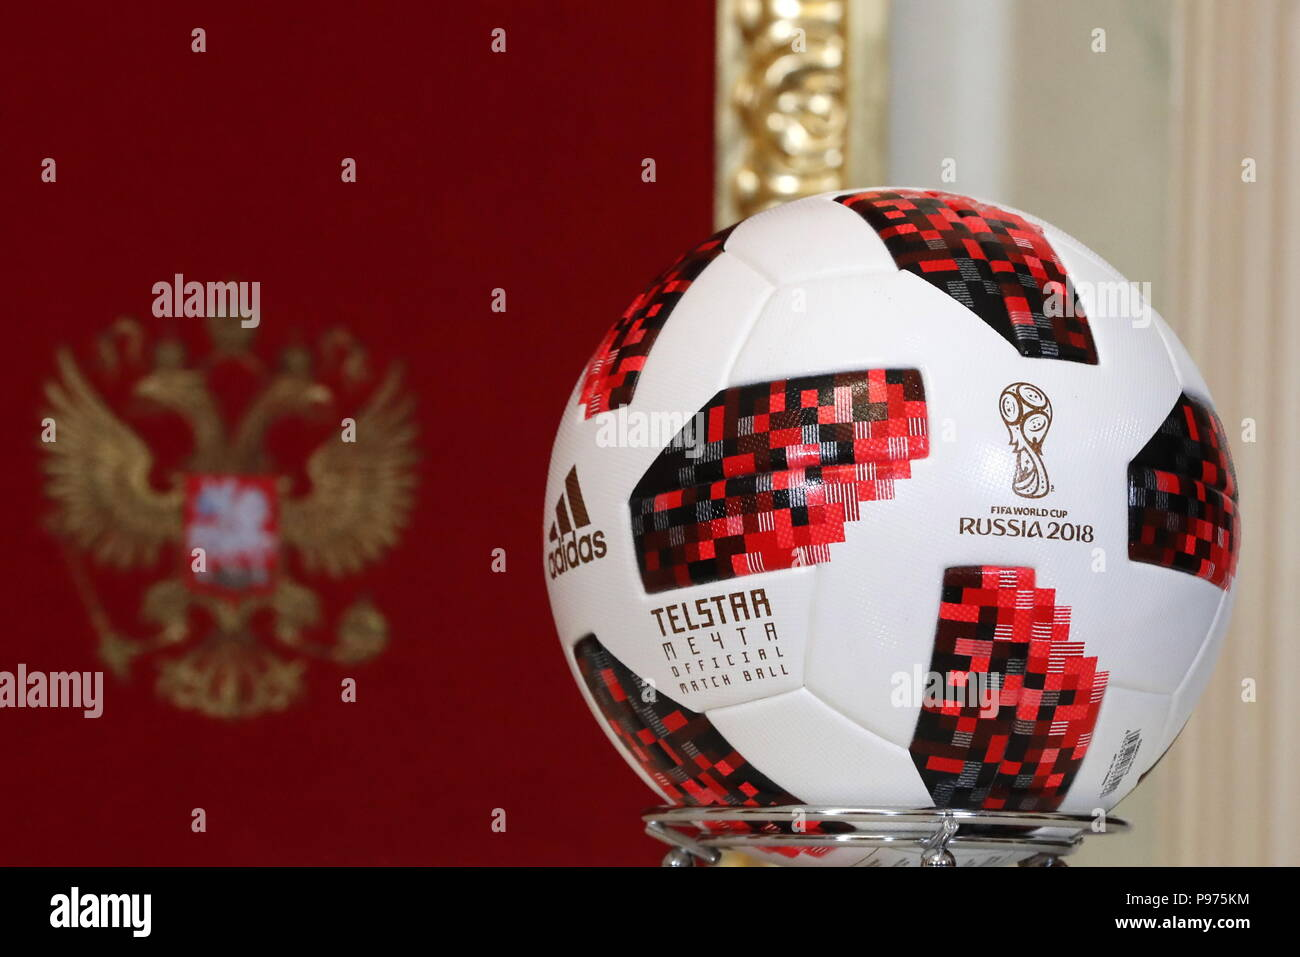 Moscow, Russia. 15th July, 2018. MOSCOW, RUSSIA - JULY 15, 2018: A Telstar Mechta, the official match ball of the 2018 FIFA World Cup knockout stage, seen during a handover ceremony at the Moscow Kremlin. Mikhail Metzel/TASS Credit: ITAR-TASS News Agency/Alamy Live News Credit: ITAR-TASS News Agency/Alamy Live News - Stock Image